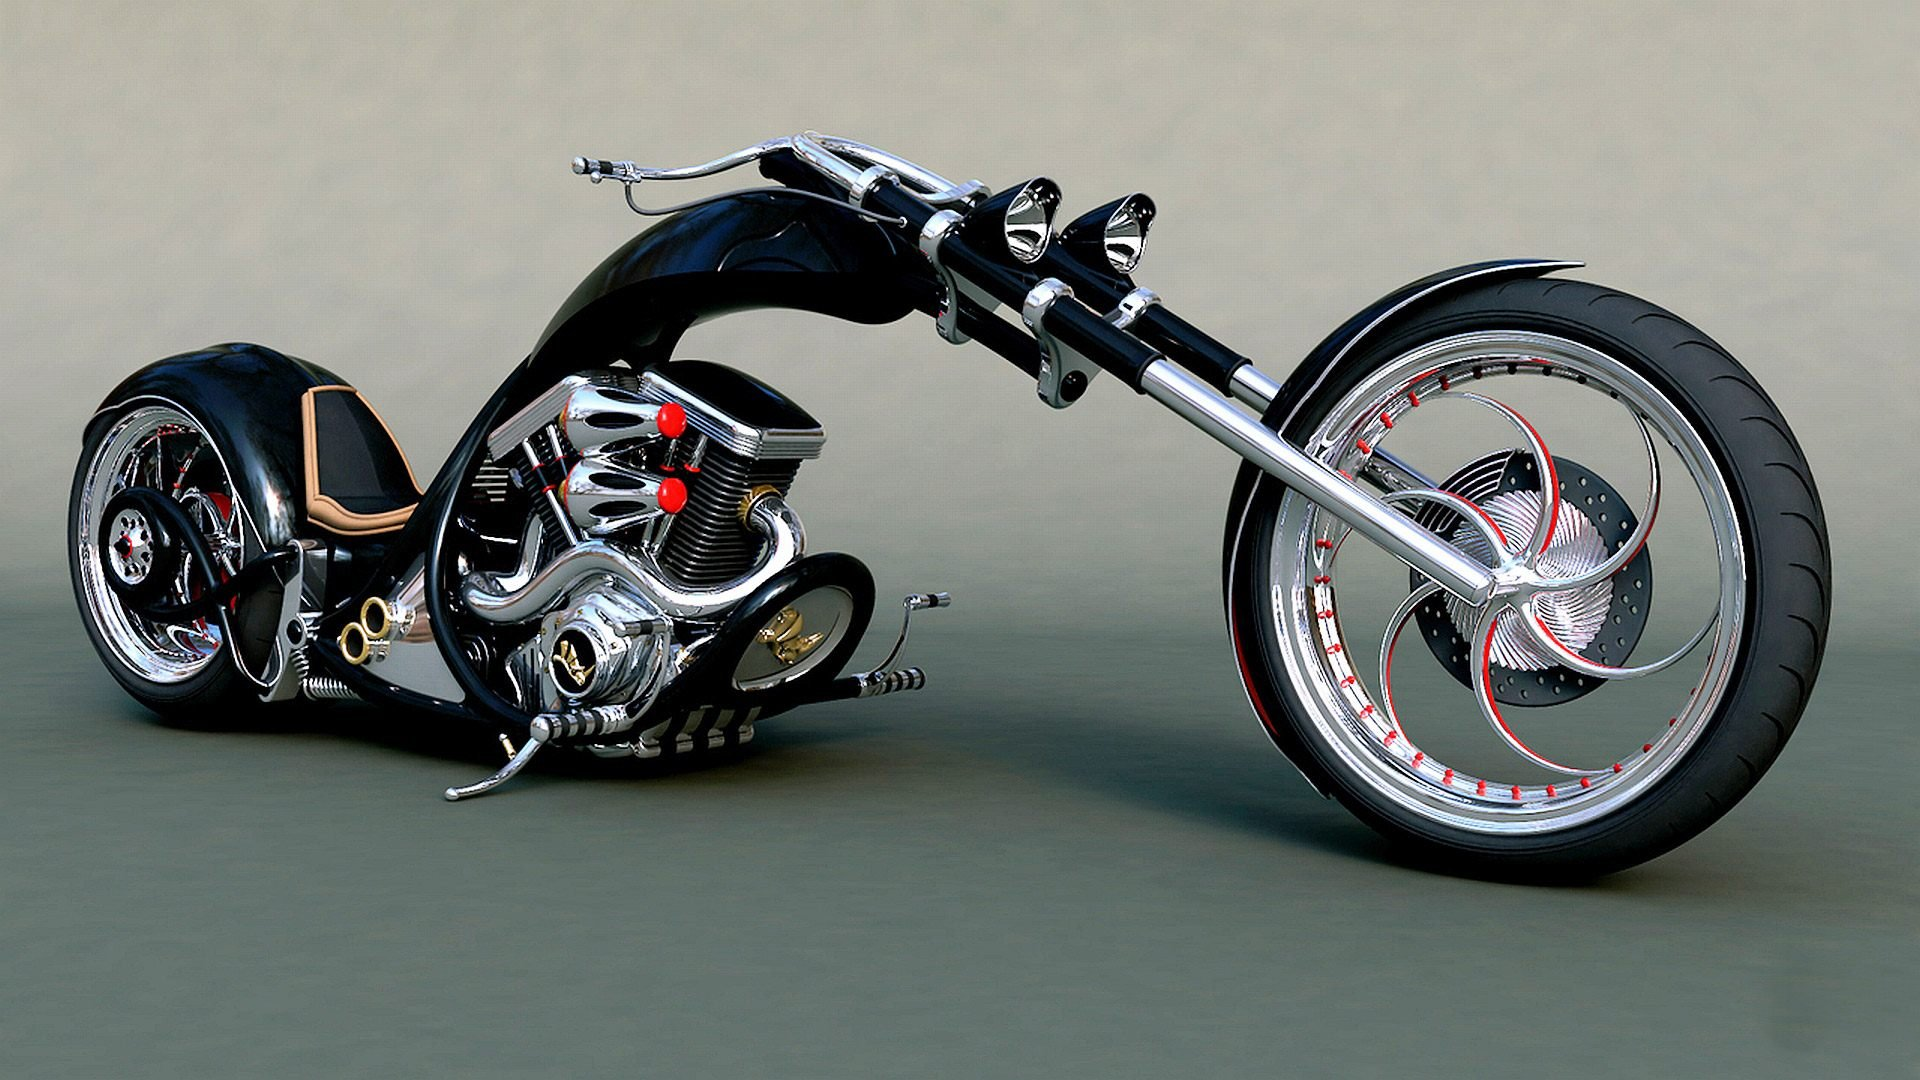 Chopper Bike Tuning Motorbike Motorcycle Hot Rod Rods Custom Wallpaper